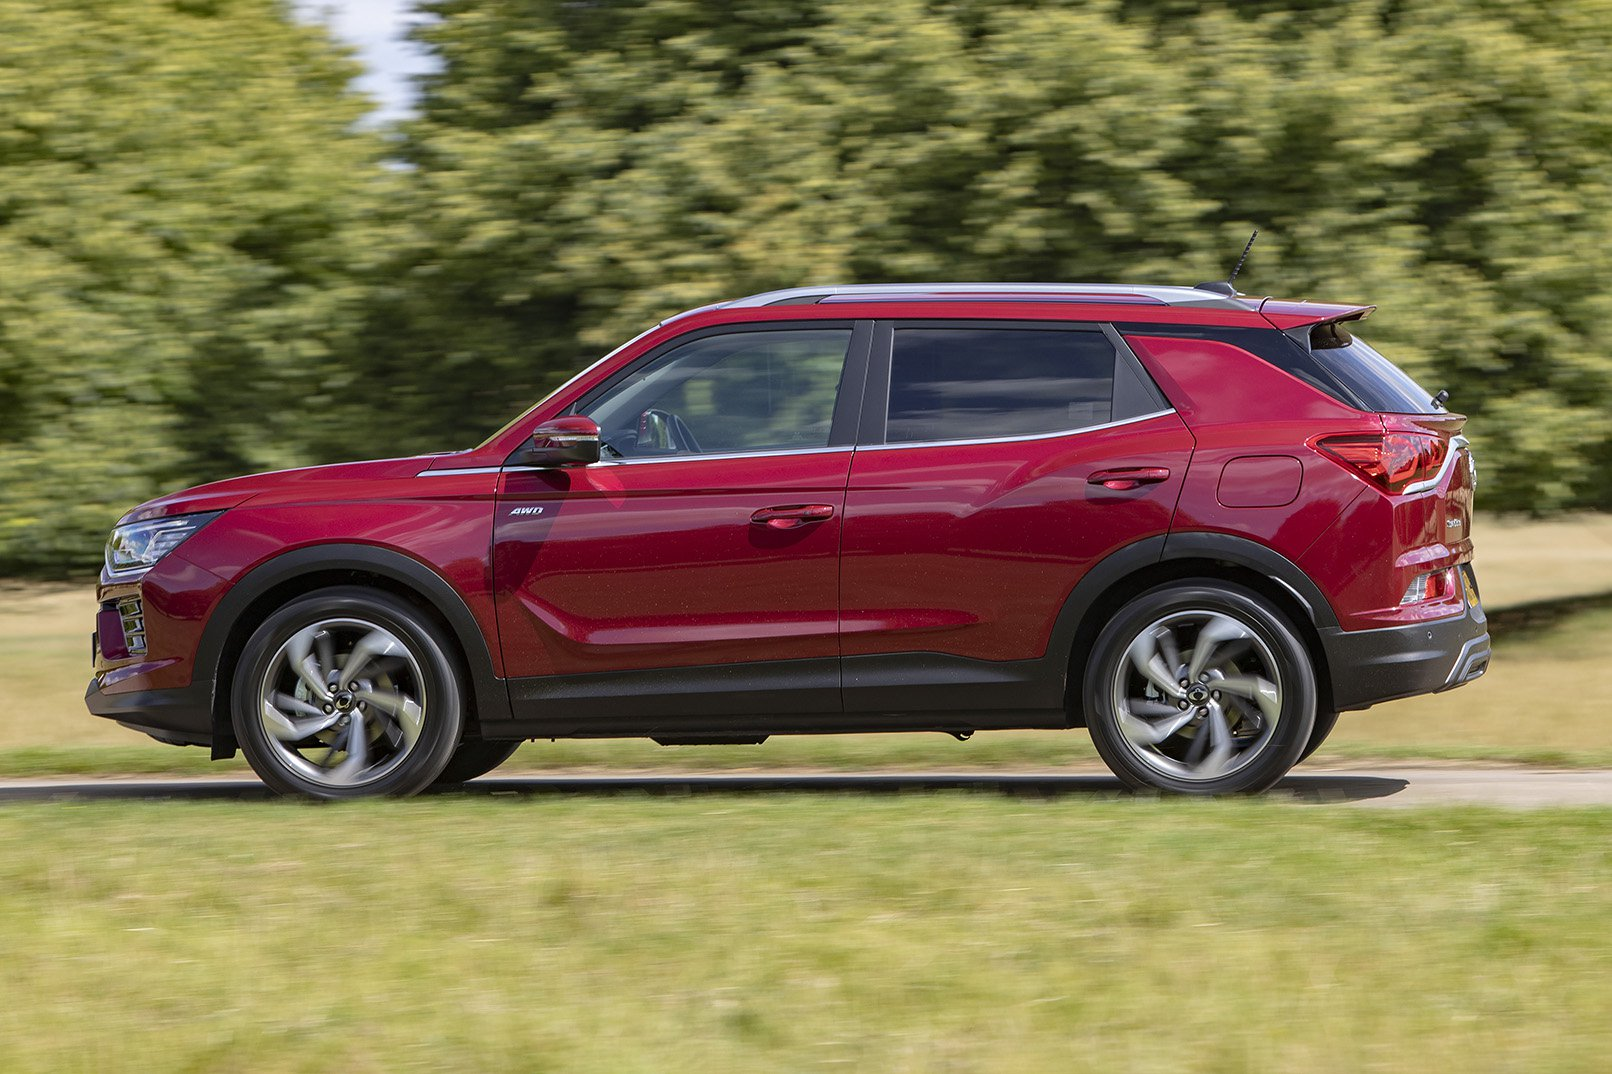 2019 ssangyong korando red side profile driving